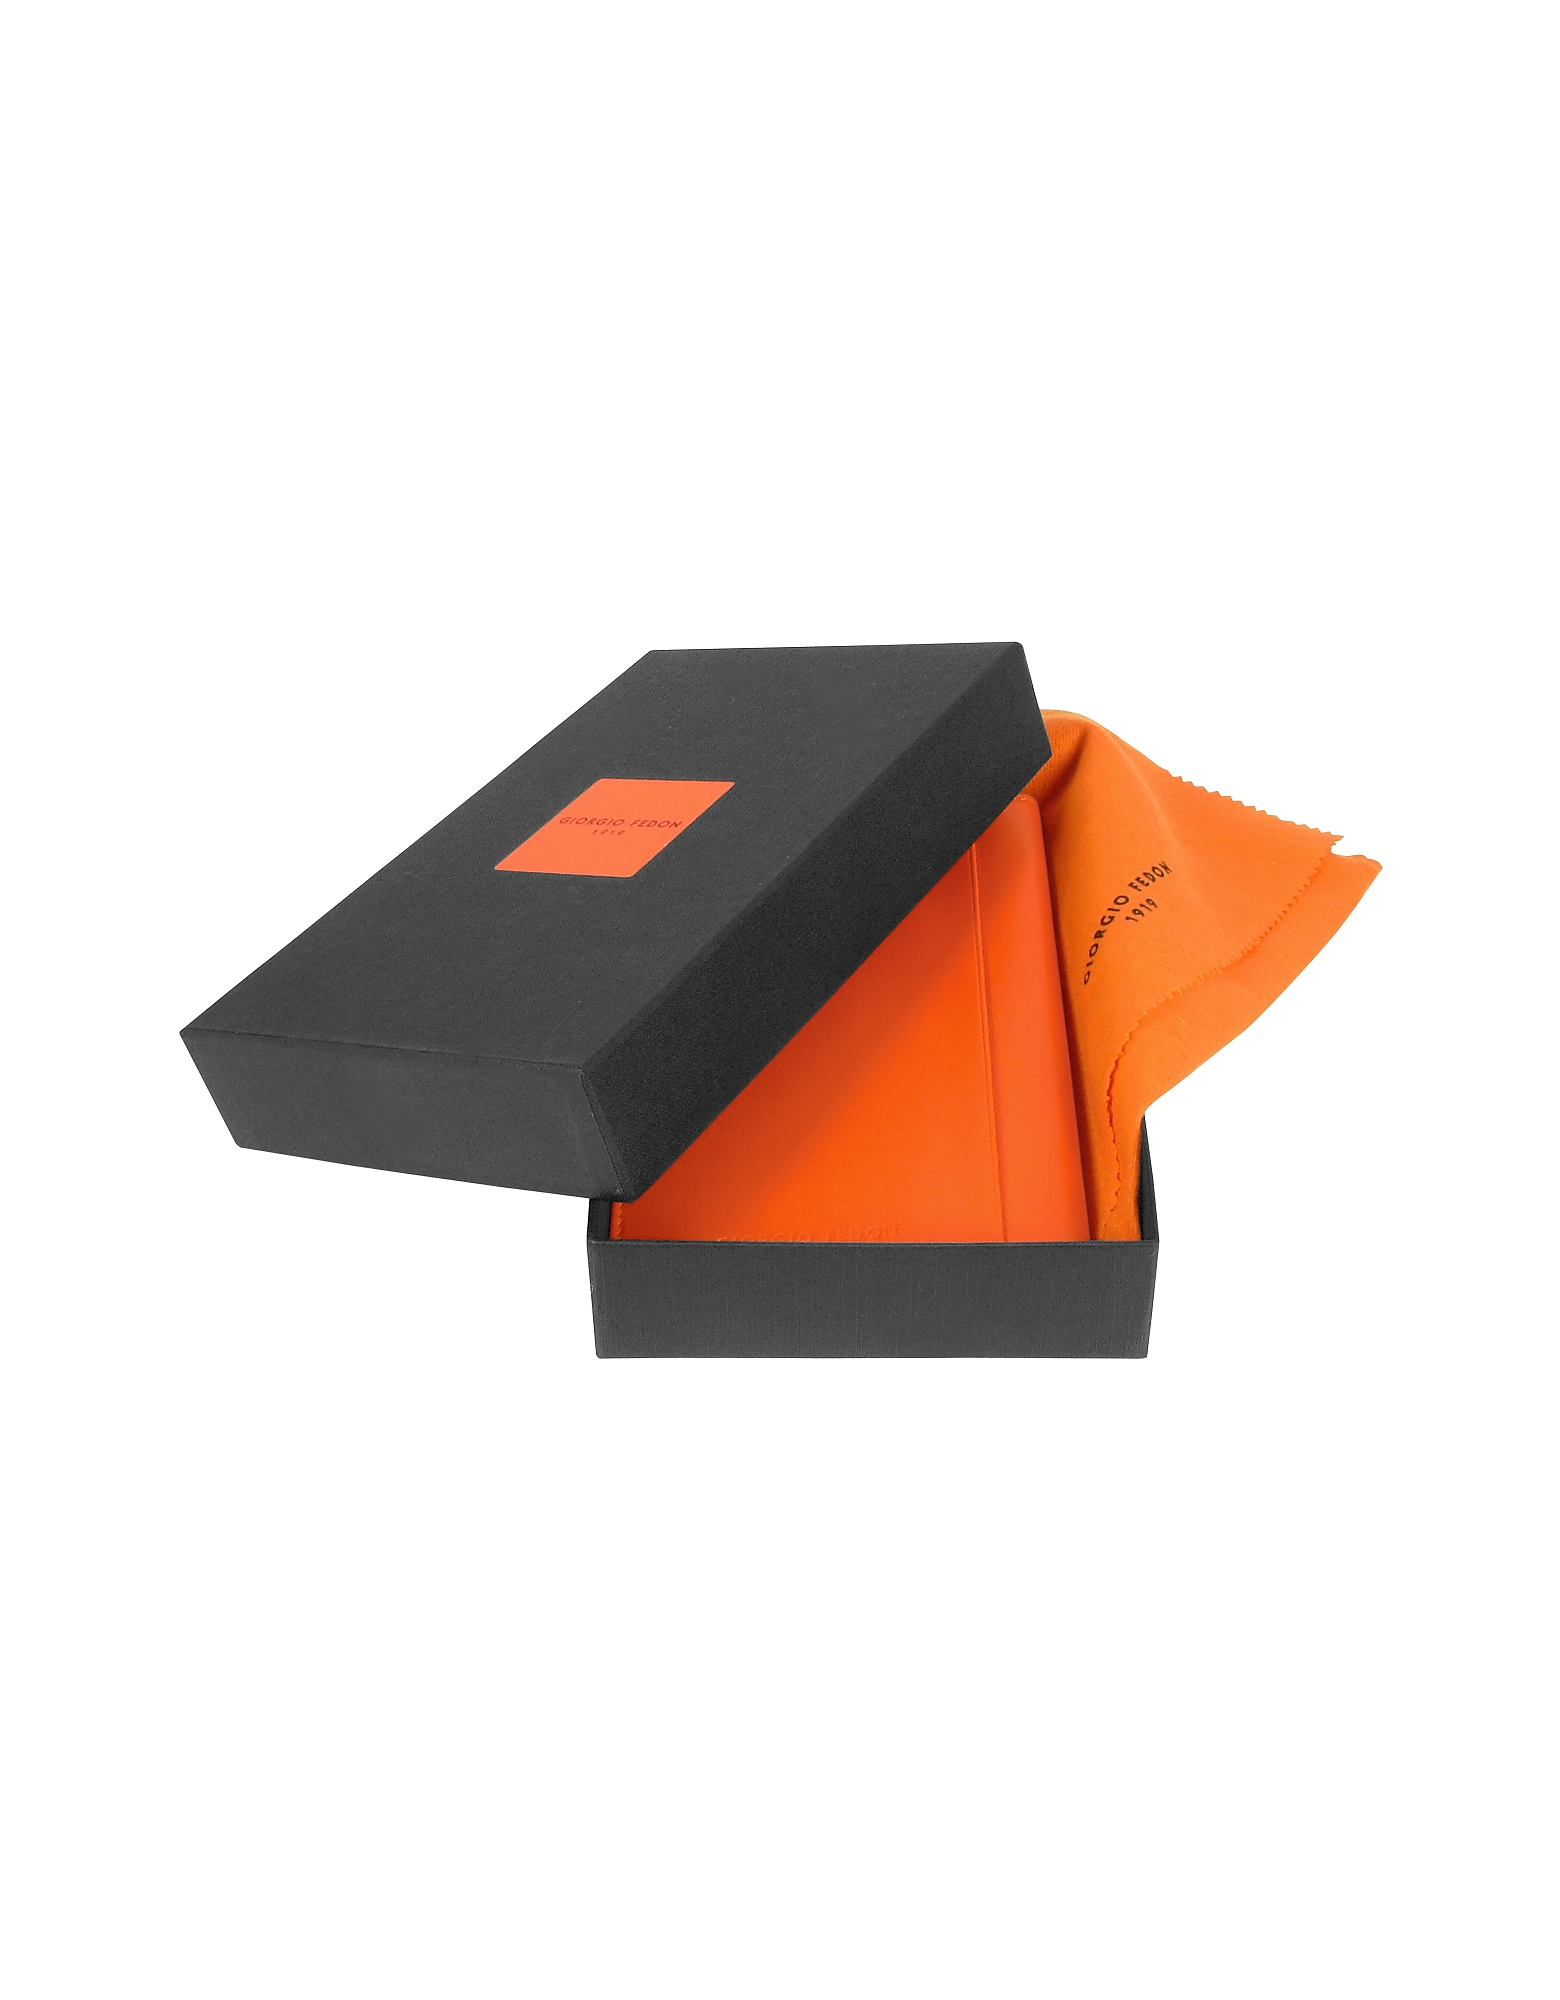 Classica Collection - Orange Calfskin Vertical Card Holder Wallet от Forzieri.com INT